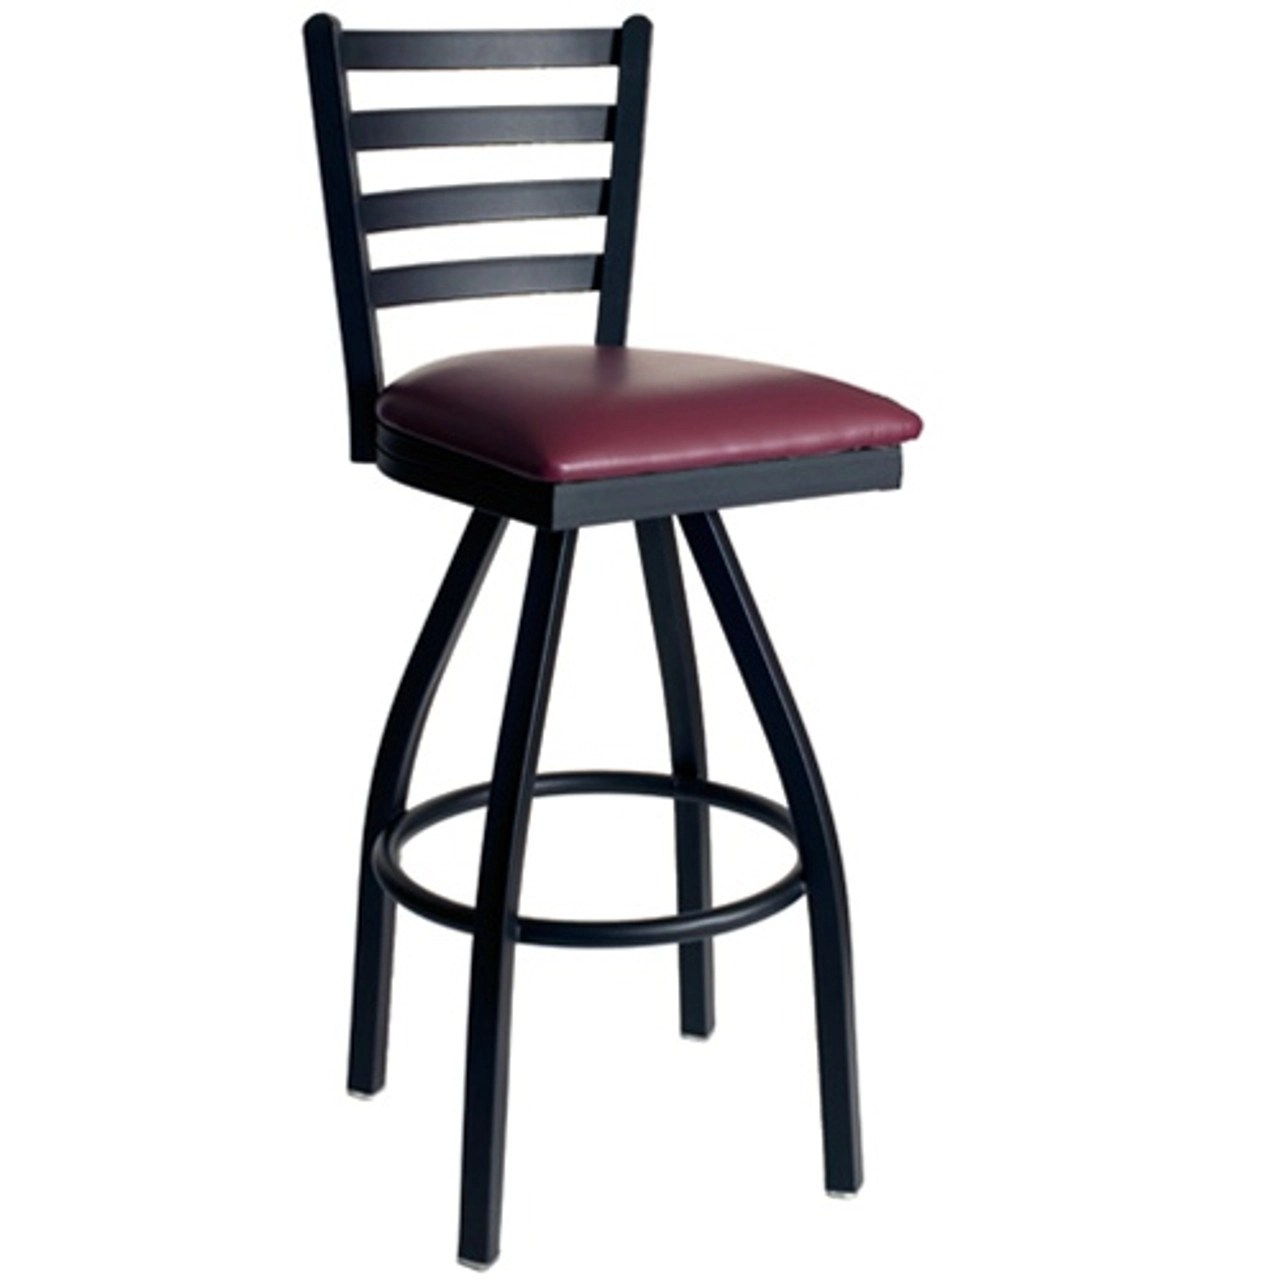 Bfm Seating Lima Metal Ladder Back Restaurant Swivel Bar Stool With Padded Seat 2160s Sbv Pub Bar Stools Commercial Bar Stools